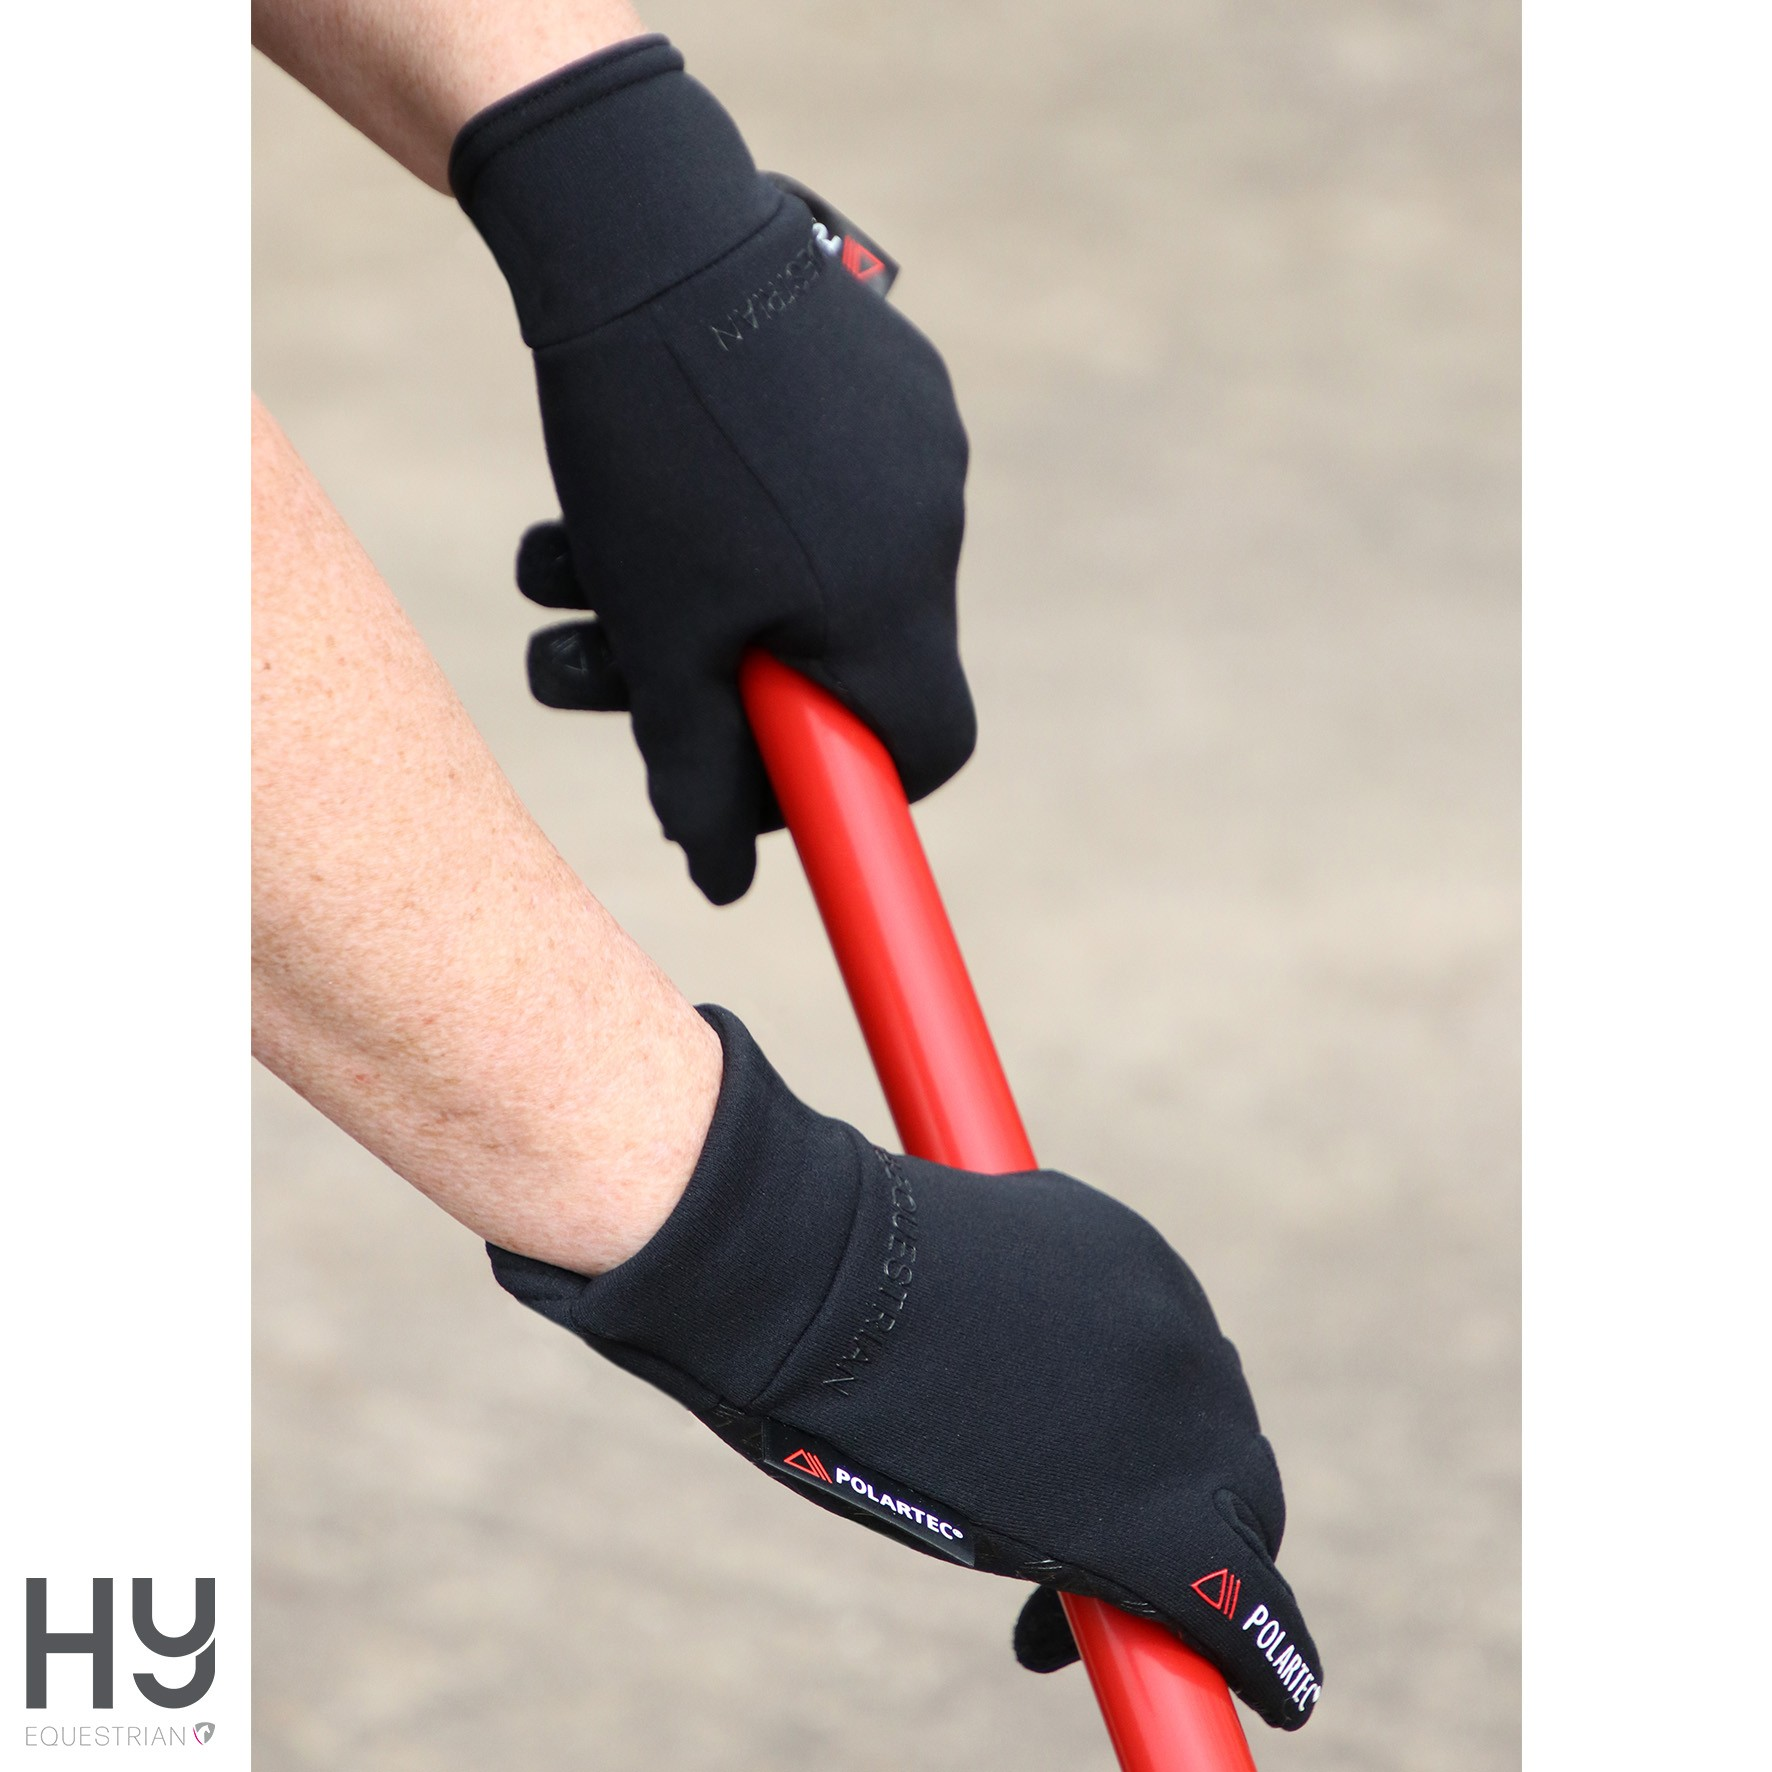 Hy Equestrian Polartec Glacial Riding and General Glove